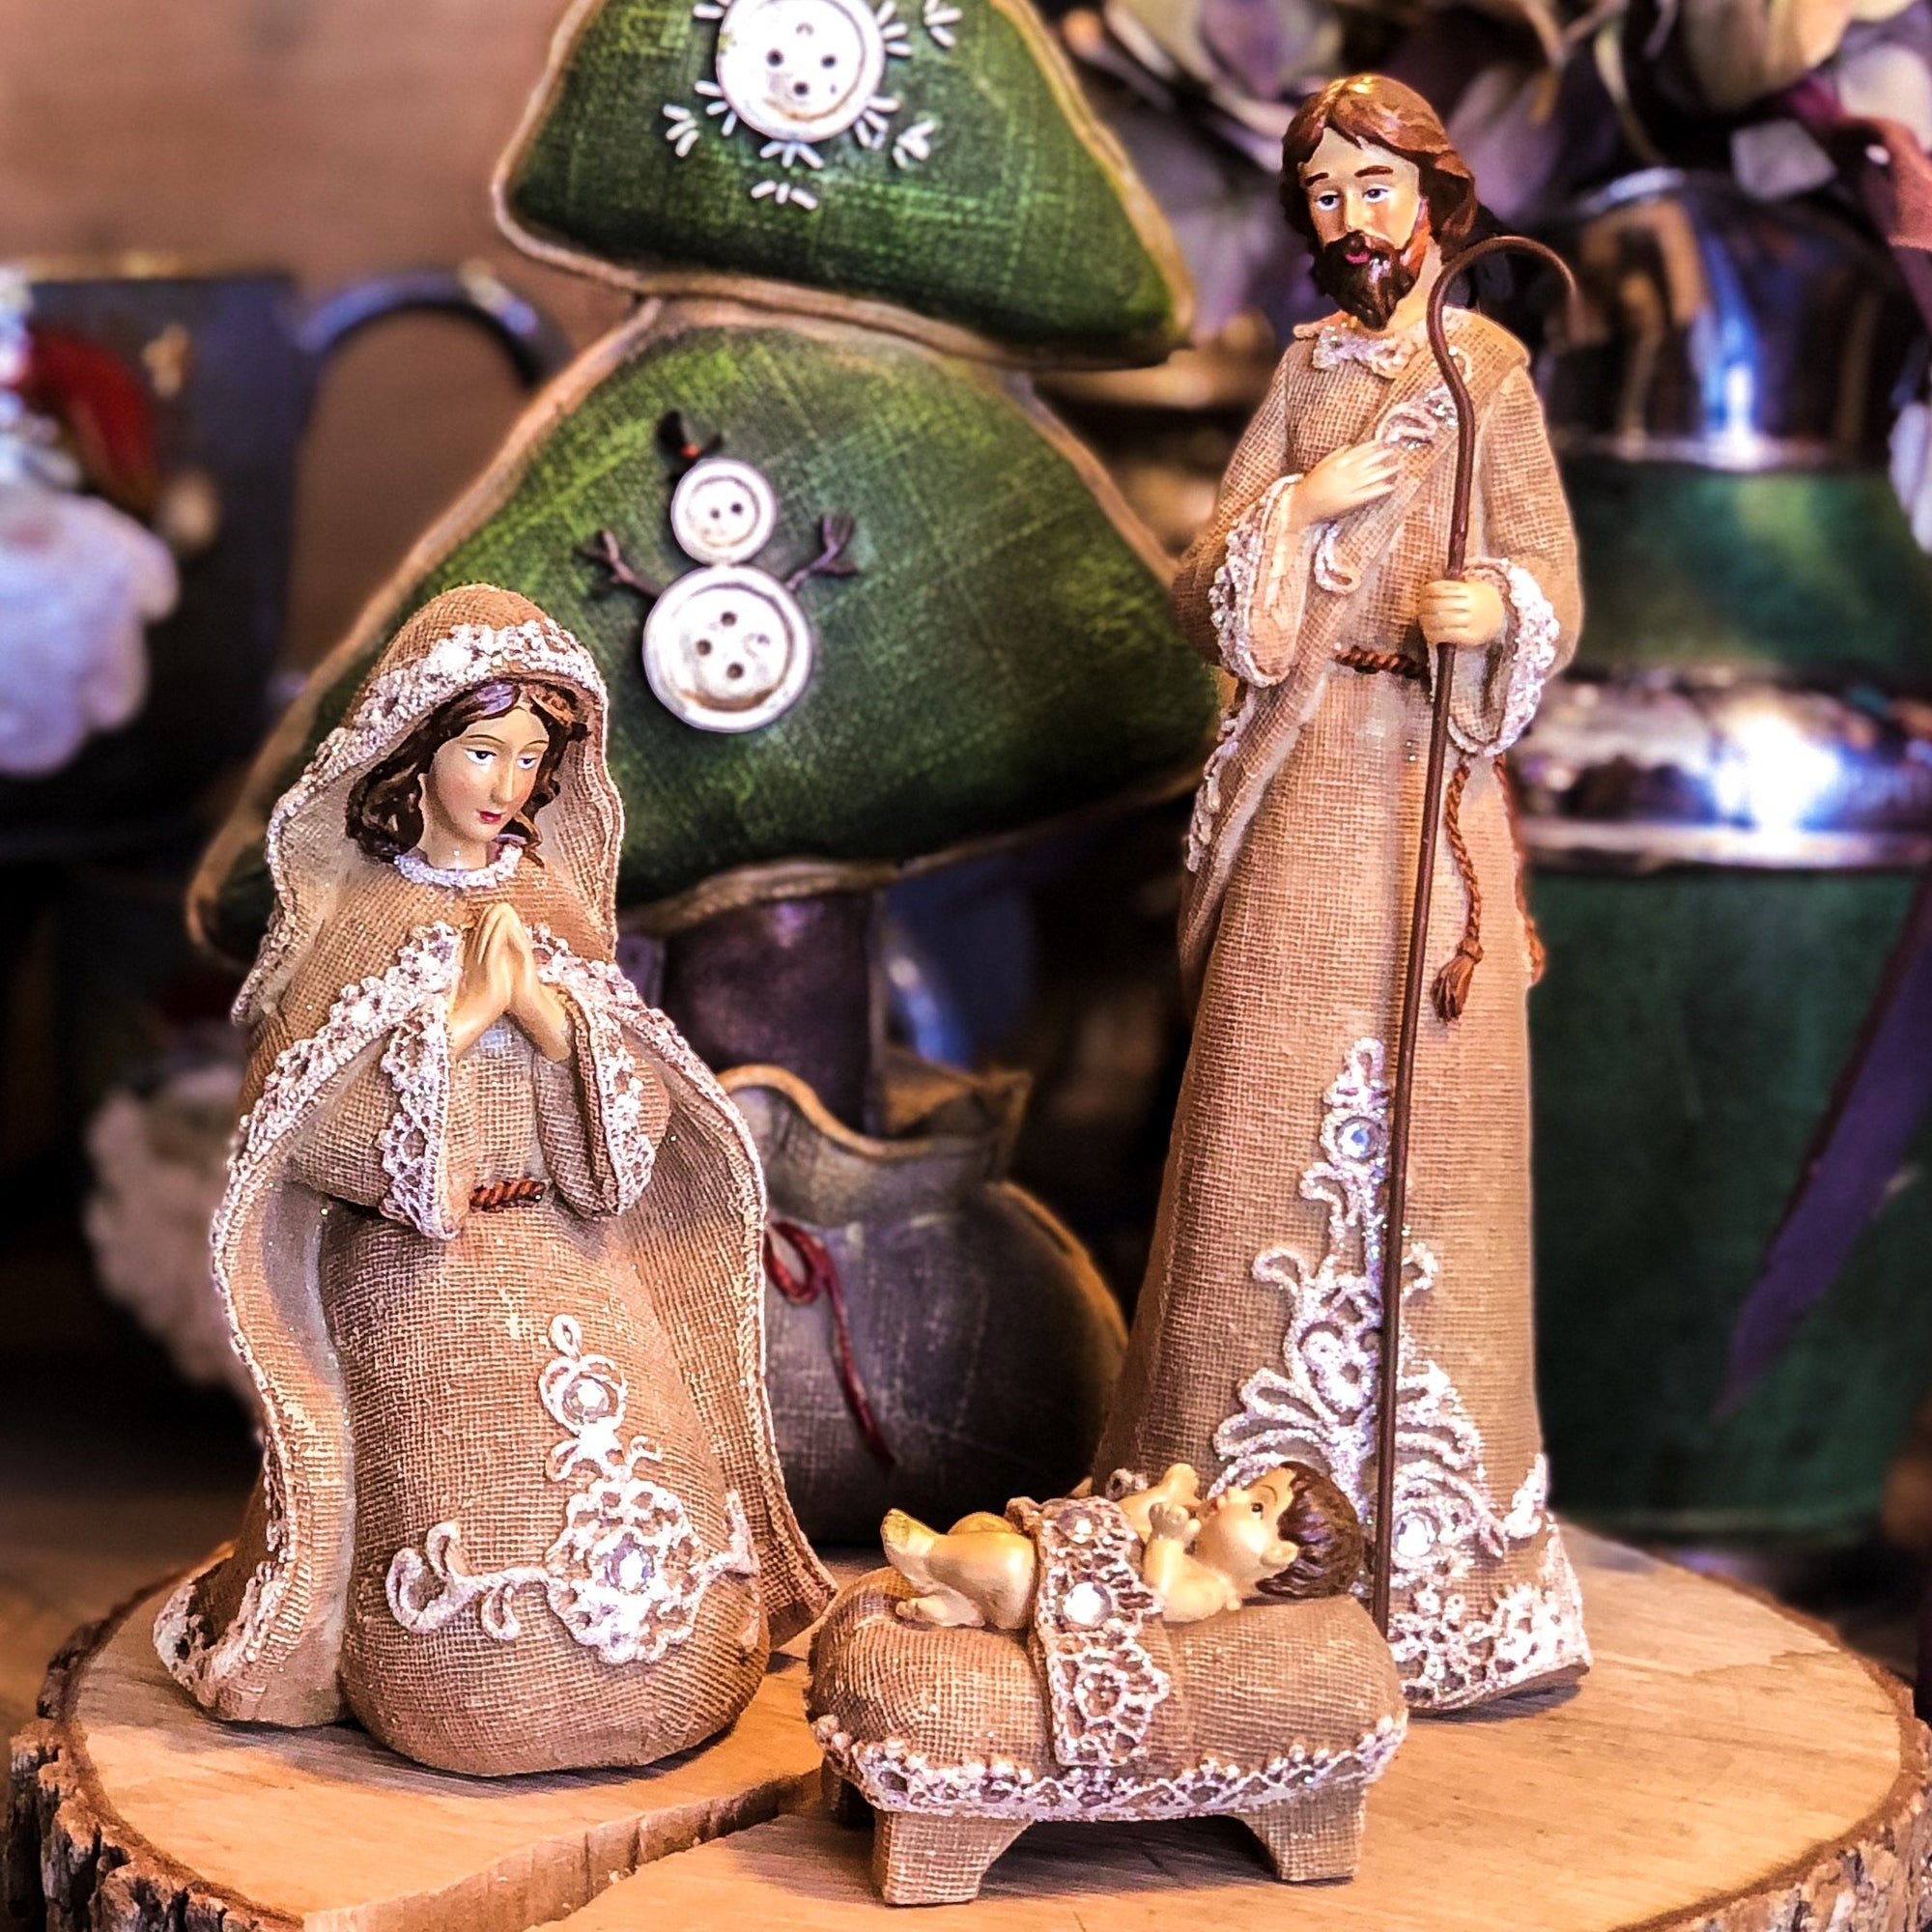 Buy 3 Piece Christmas Nativity in Burlap from Walking Pants Curiosities, the Most un-General Gift Store in Downtown Memphis, Tennessee!